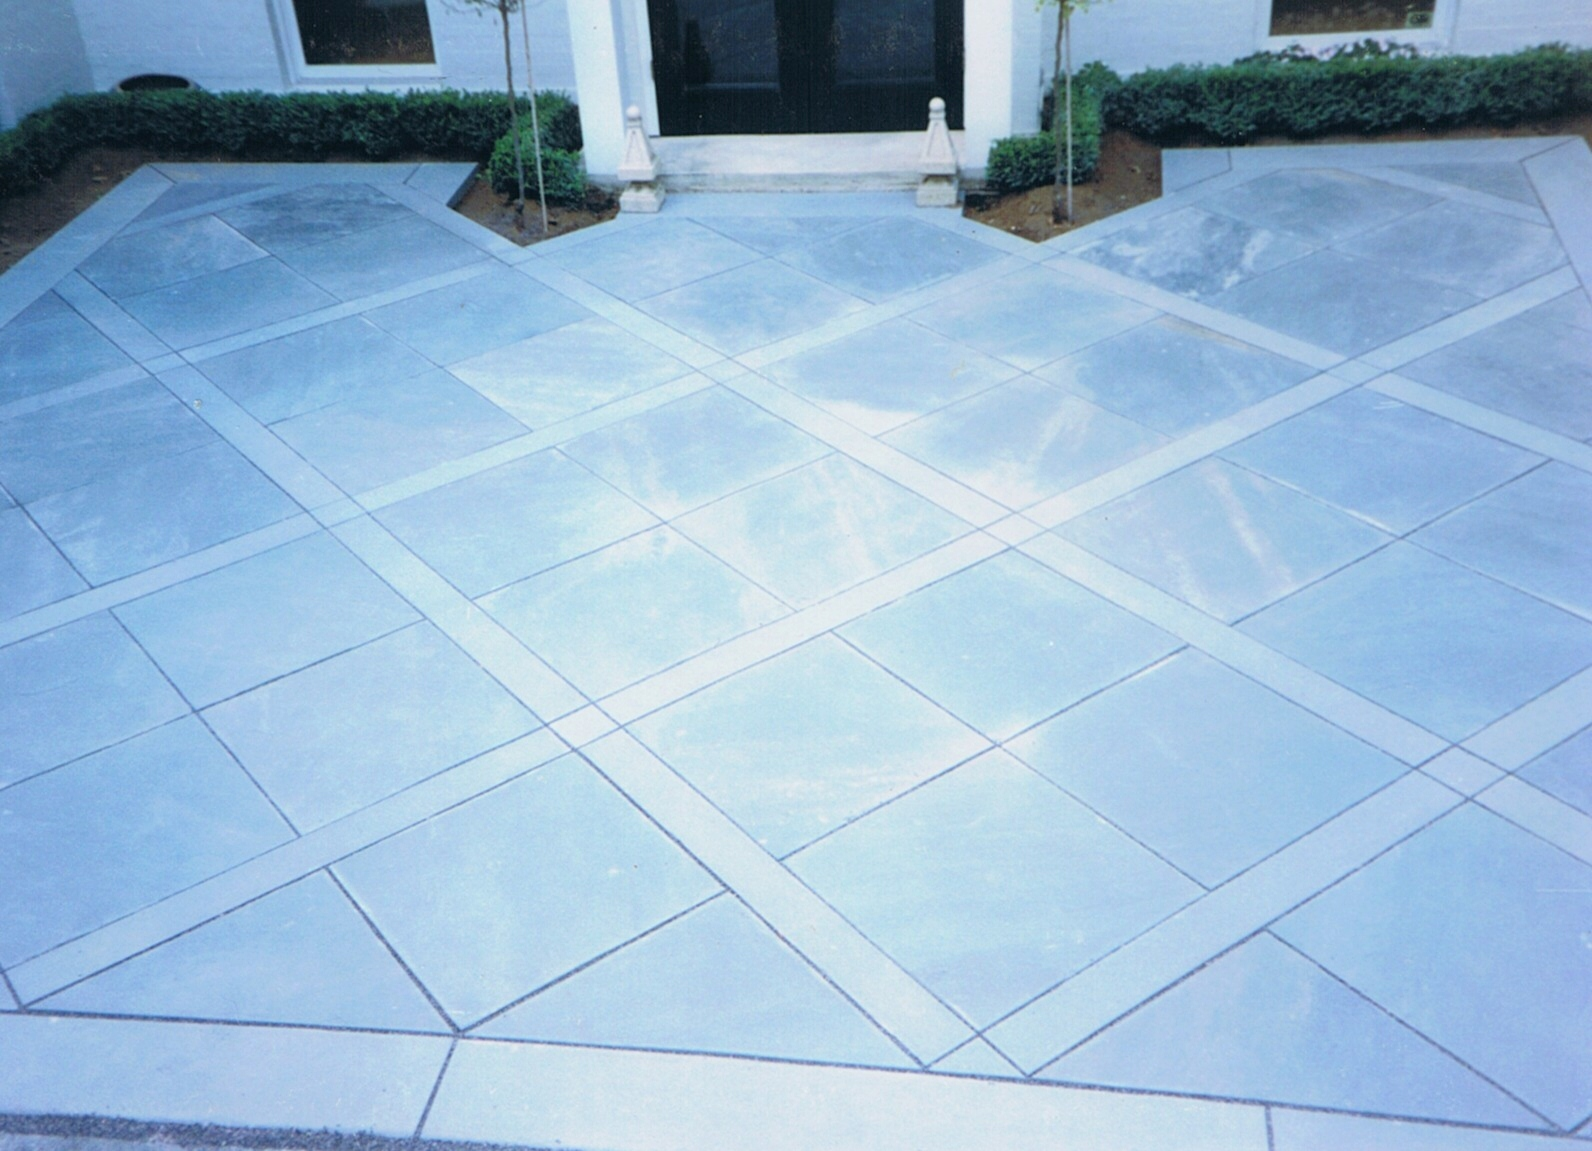 Patio Bluestone Squares Hutchings.jpg